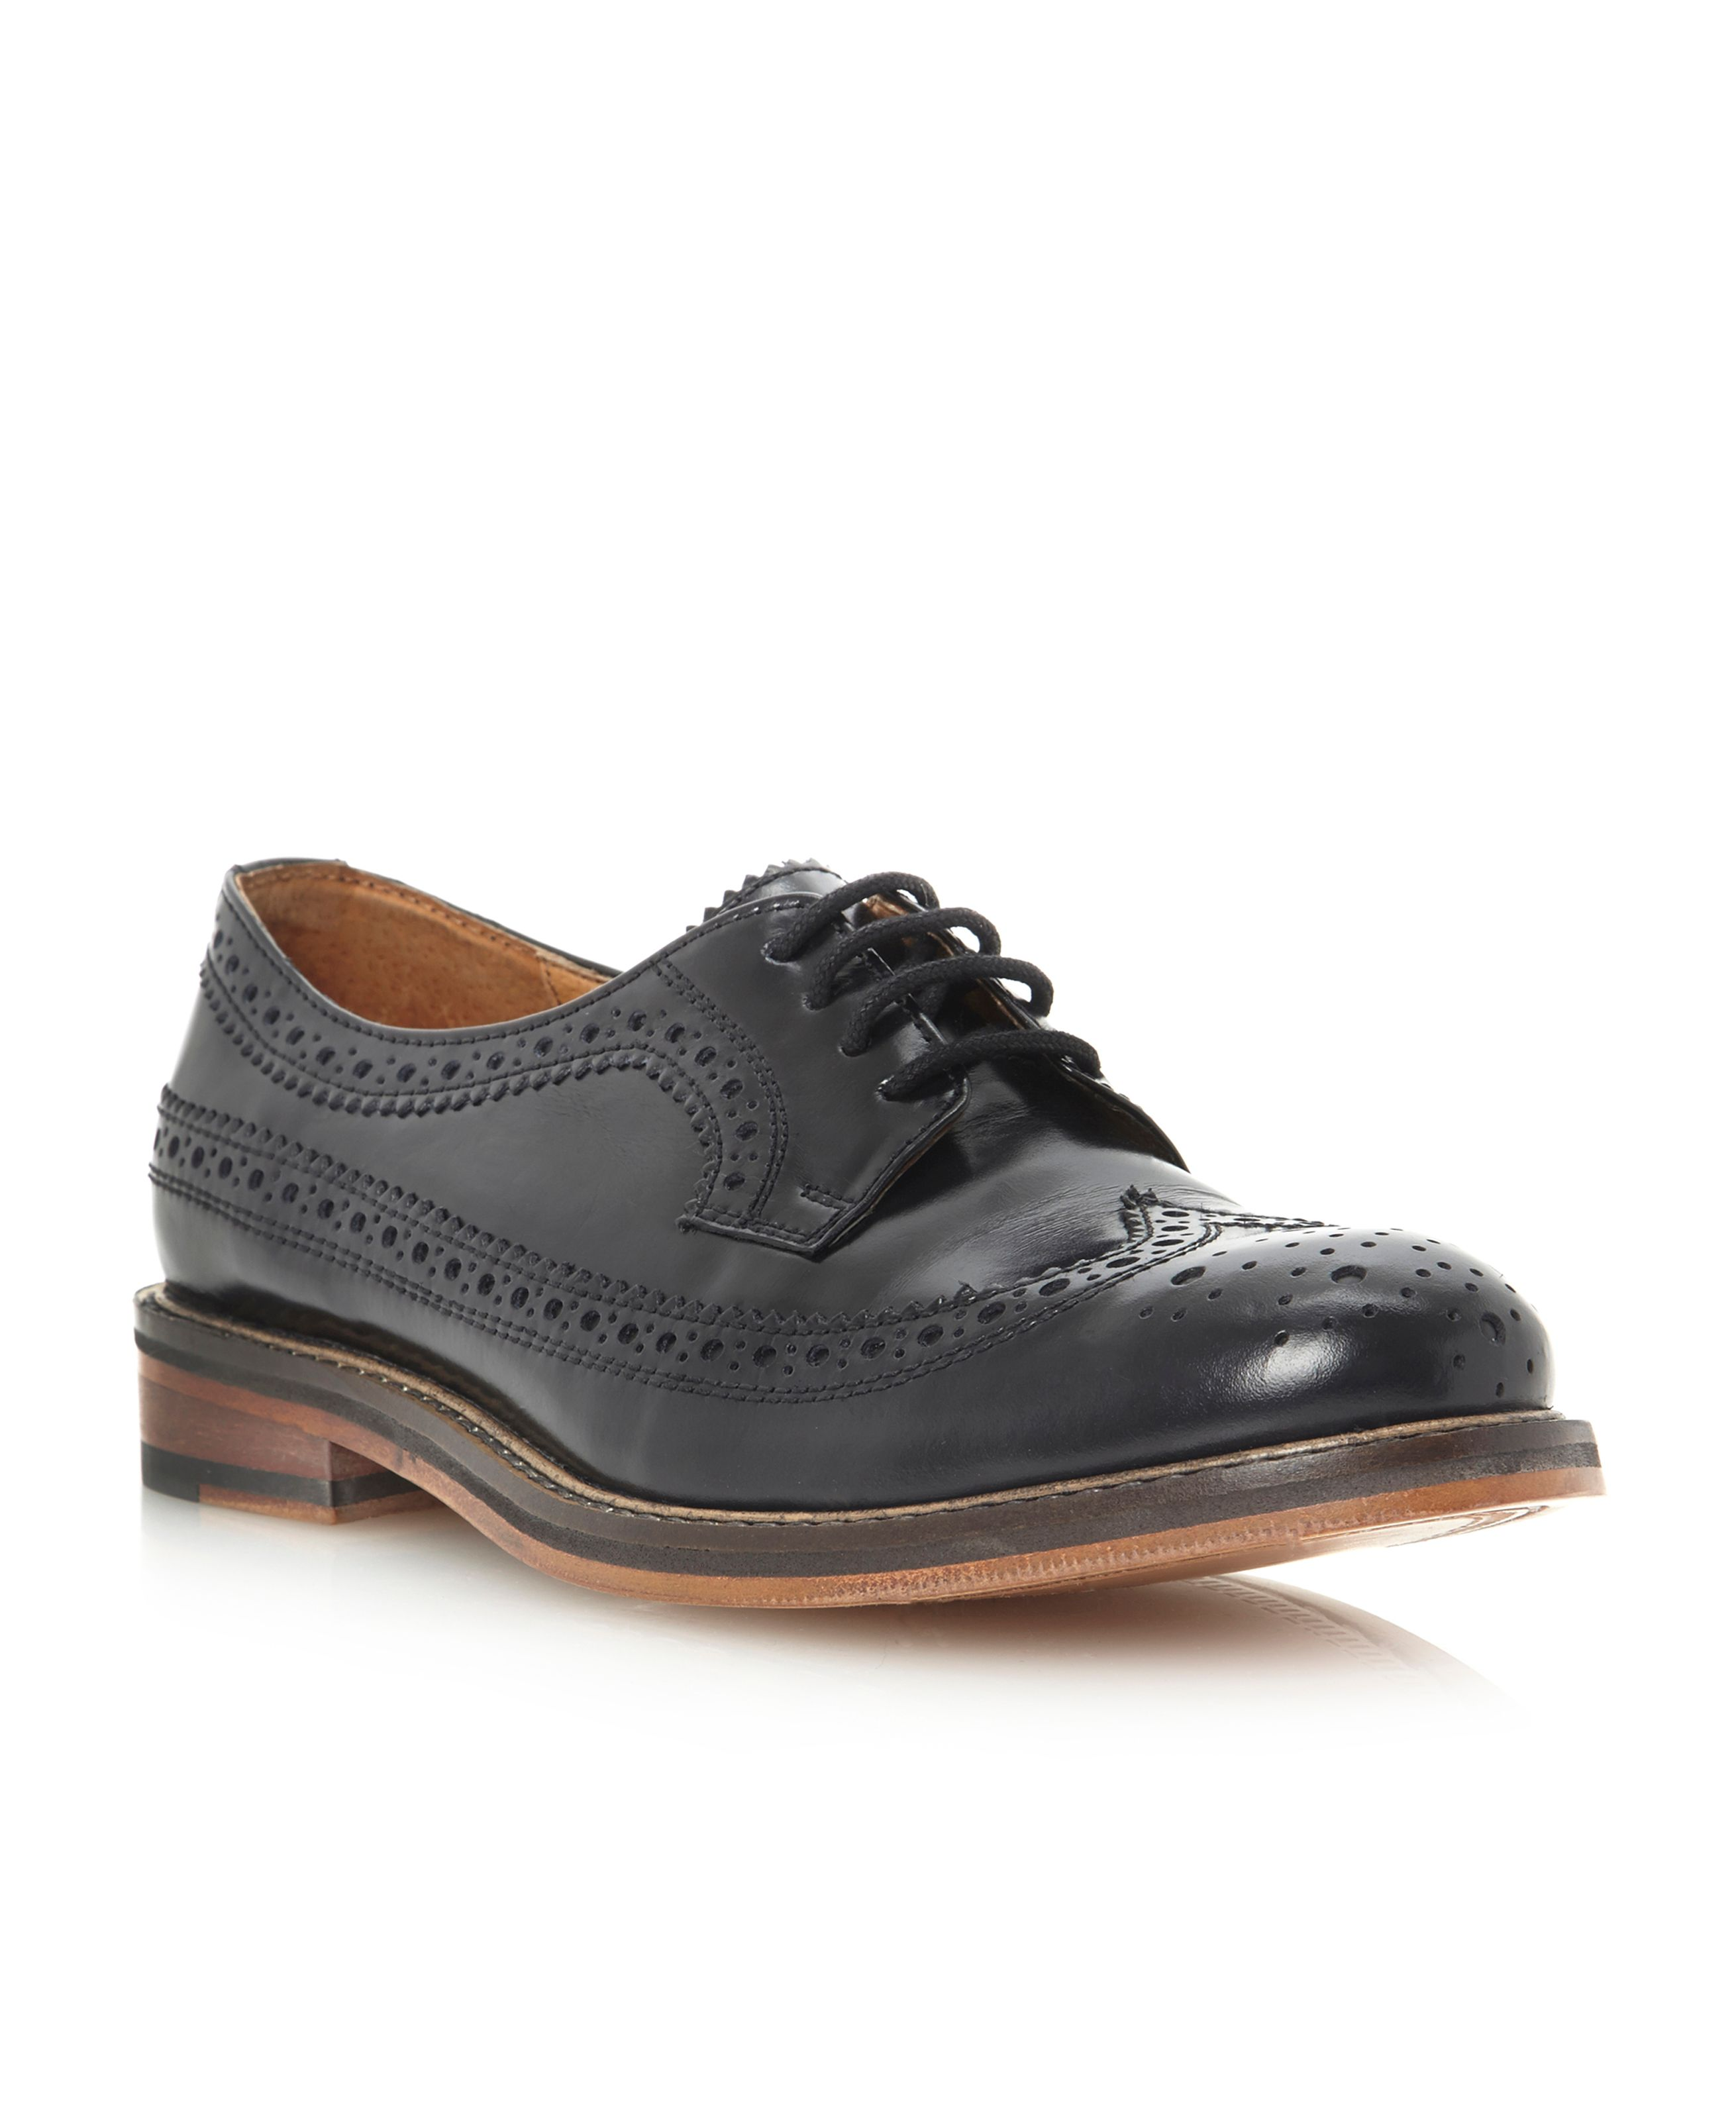 Lessing lace up brogue shoes